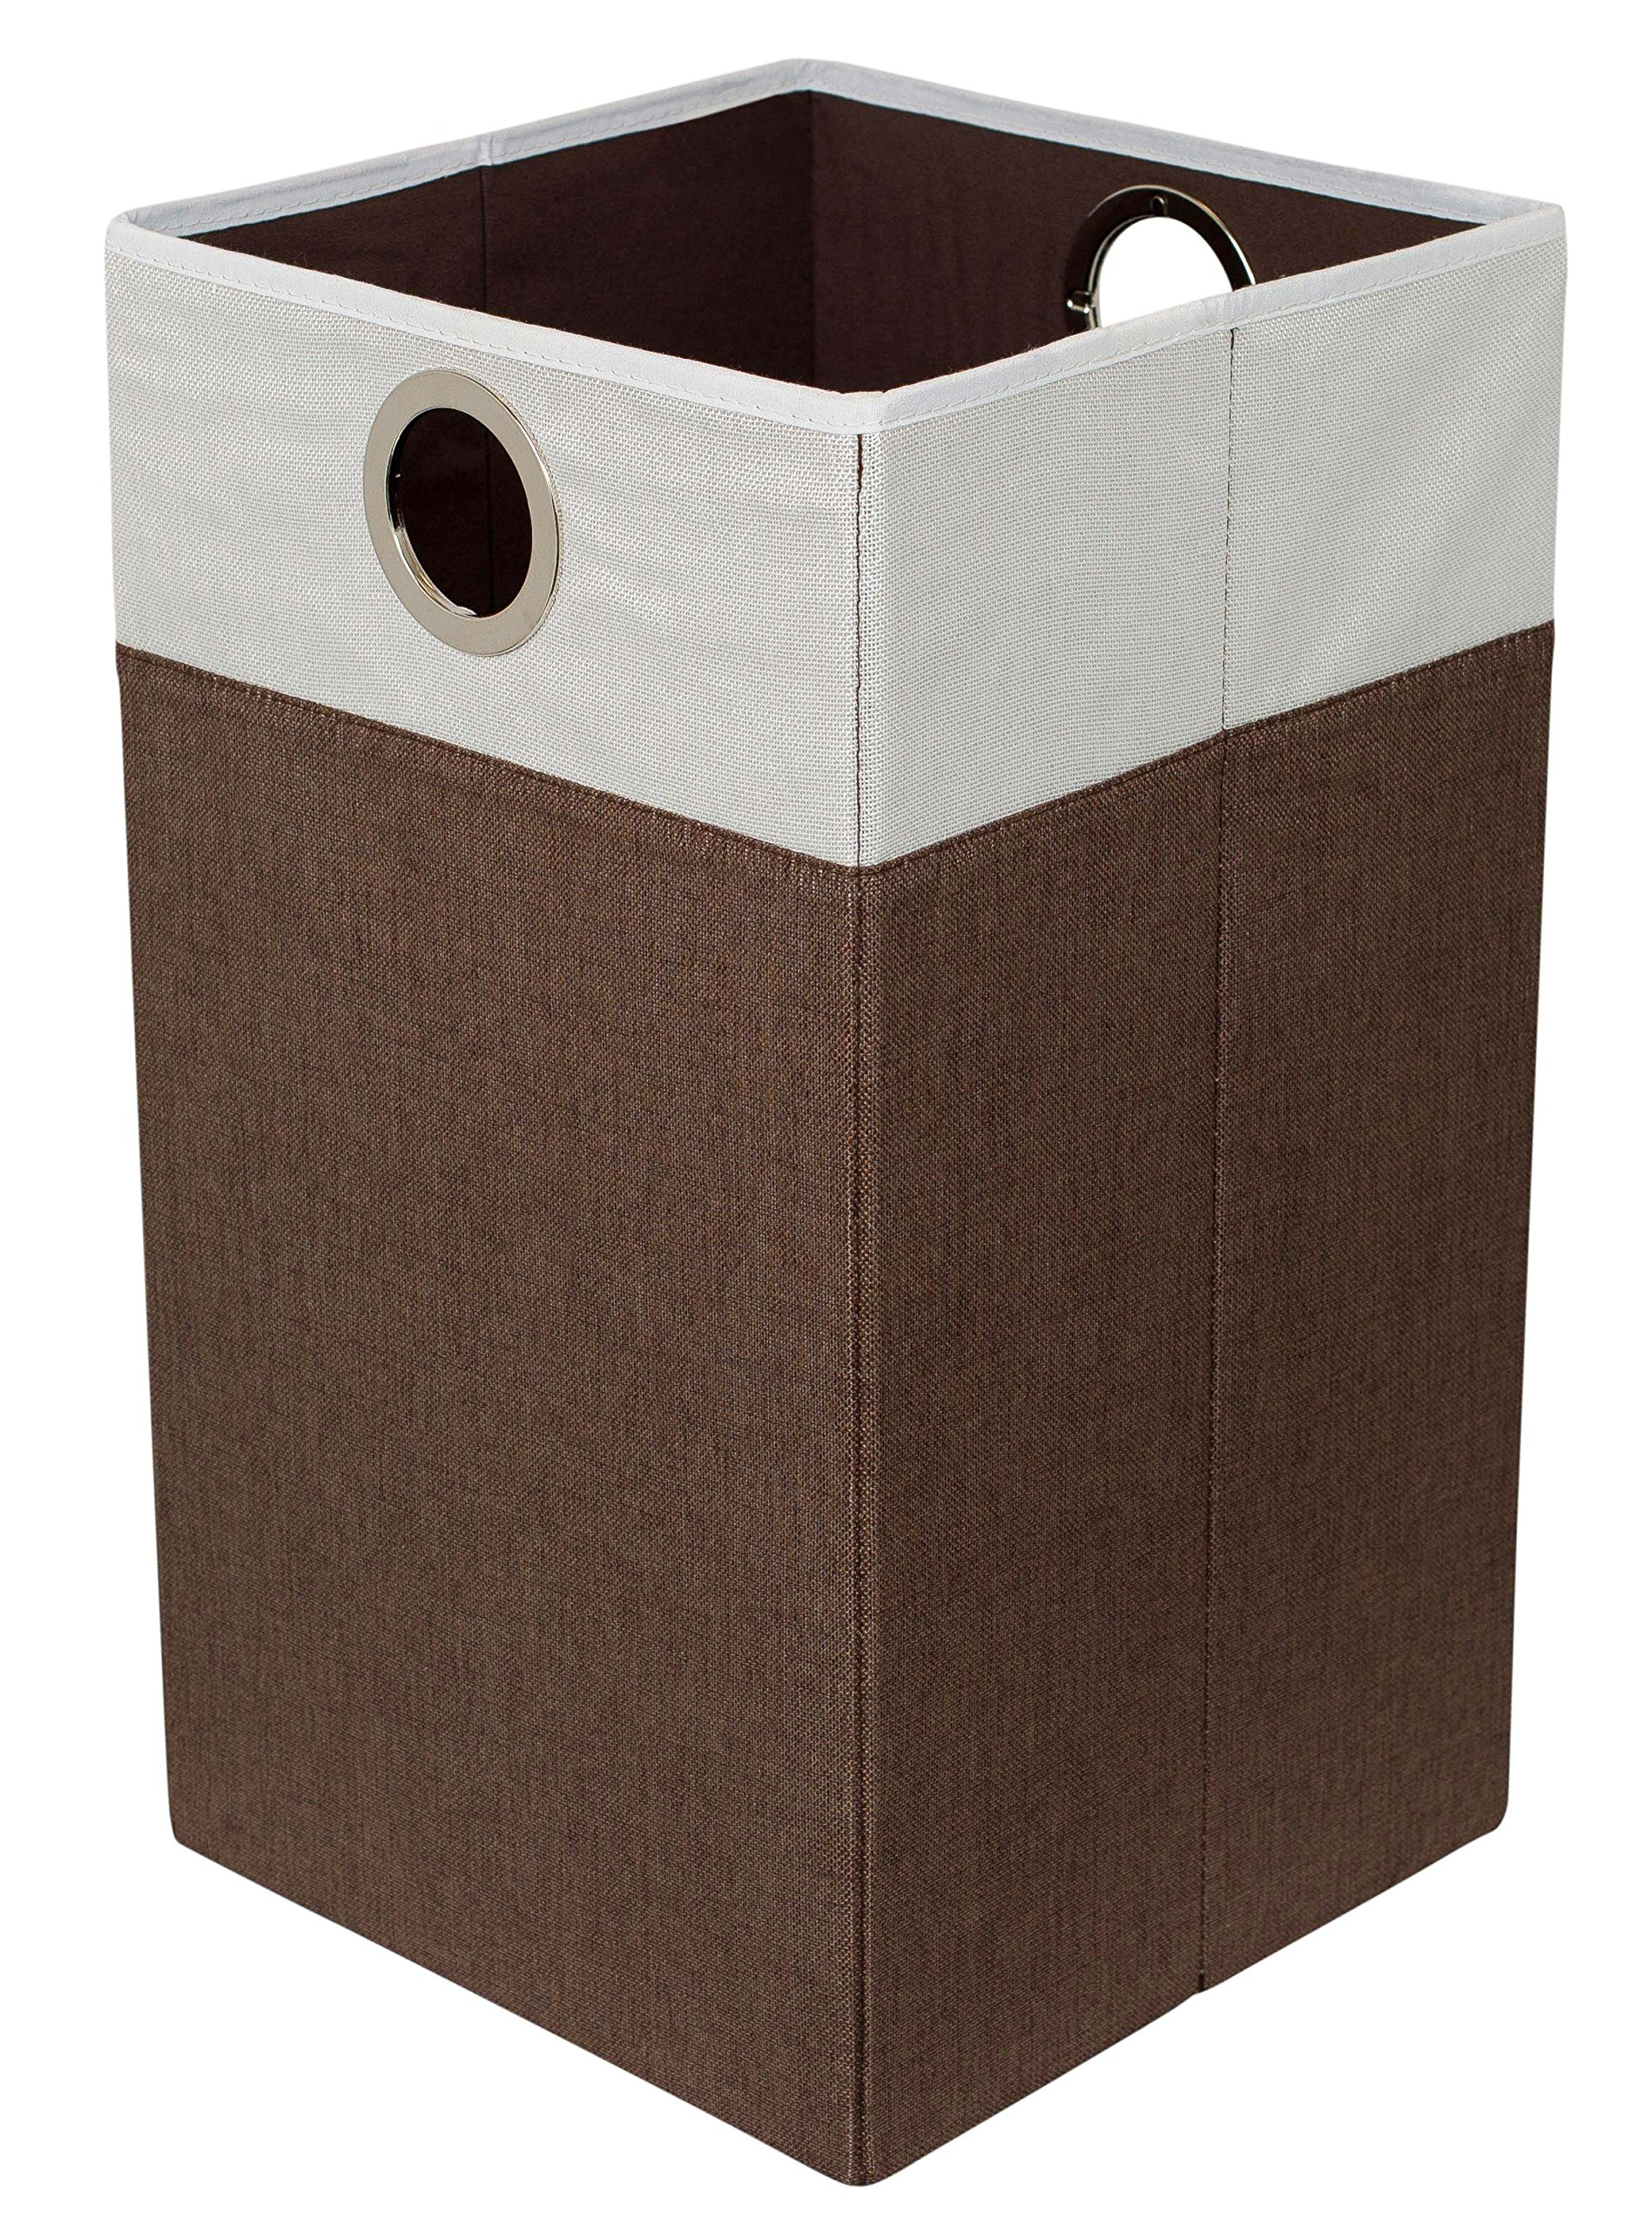 BirdRock Home Folding Cloth Laundry Hamper with Handles | Dirty Clothes Sorter | Easy Storage | Collapsible | Brown and White